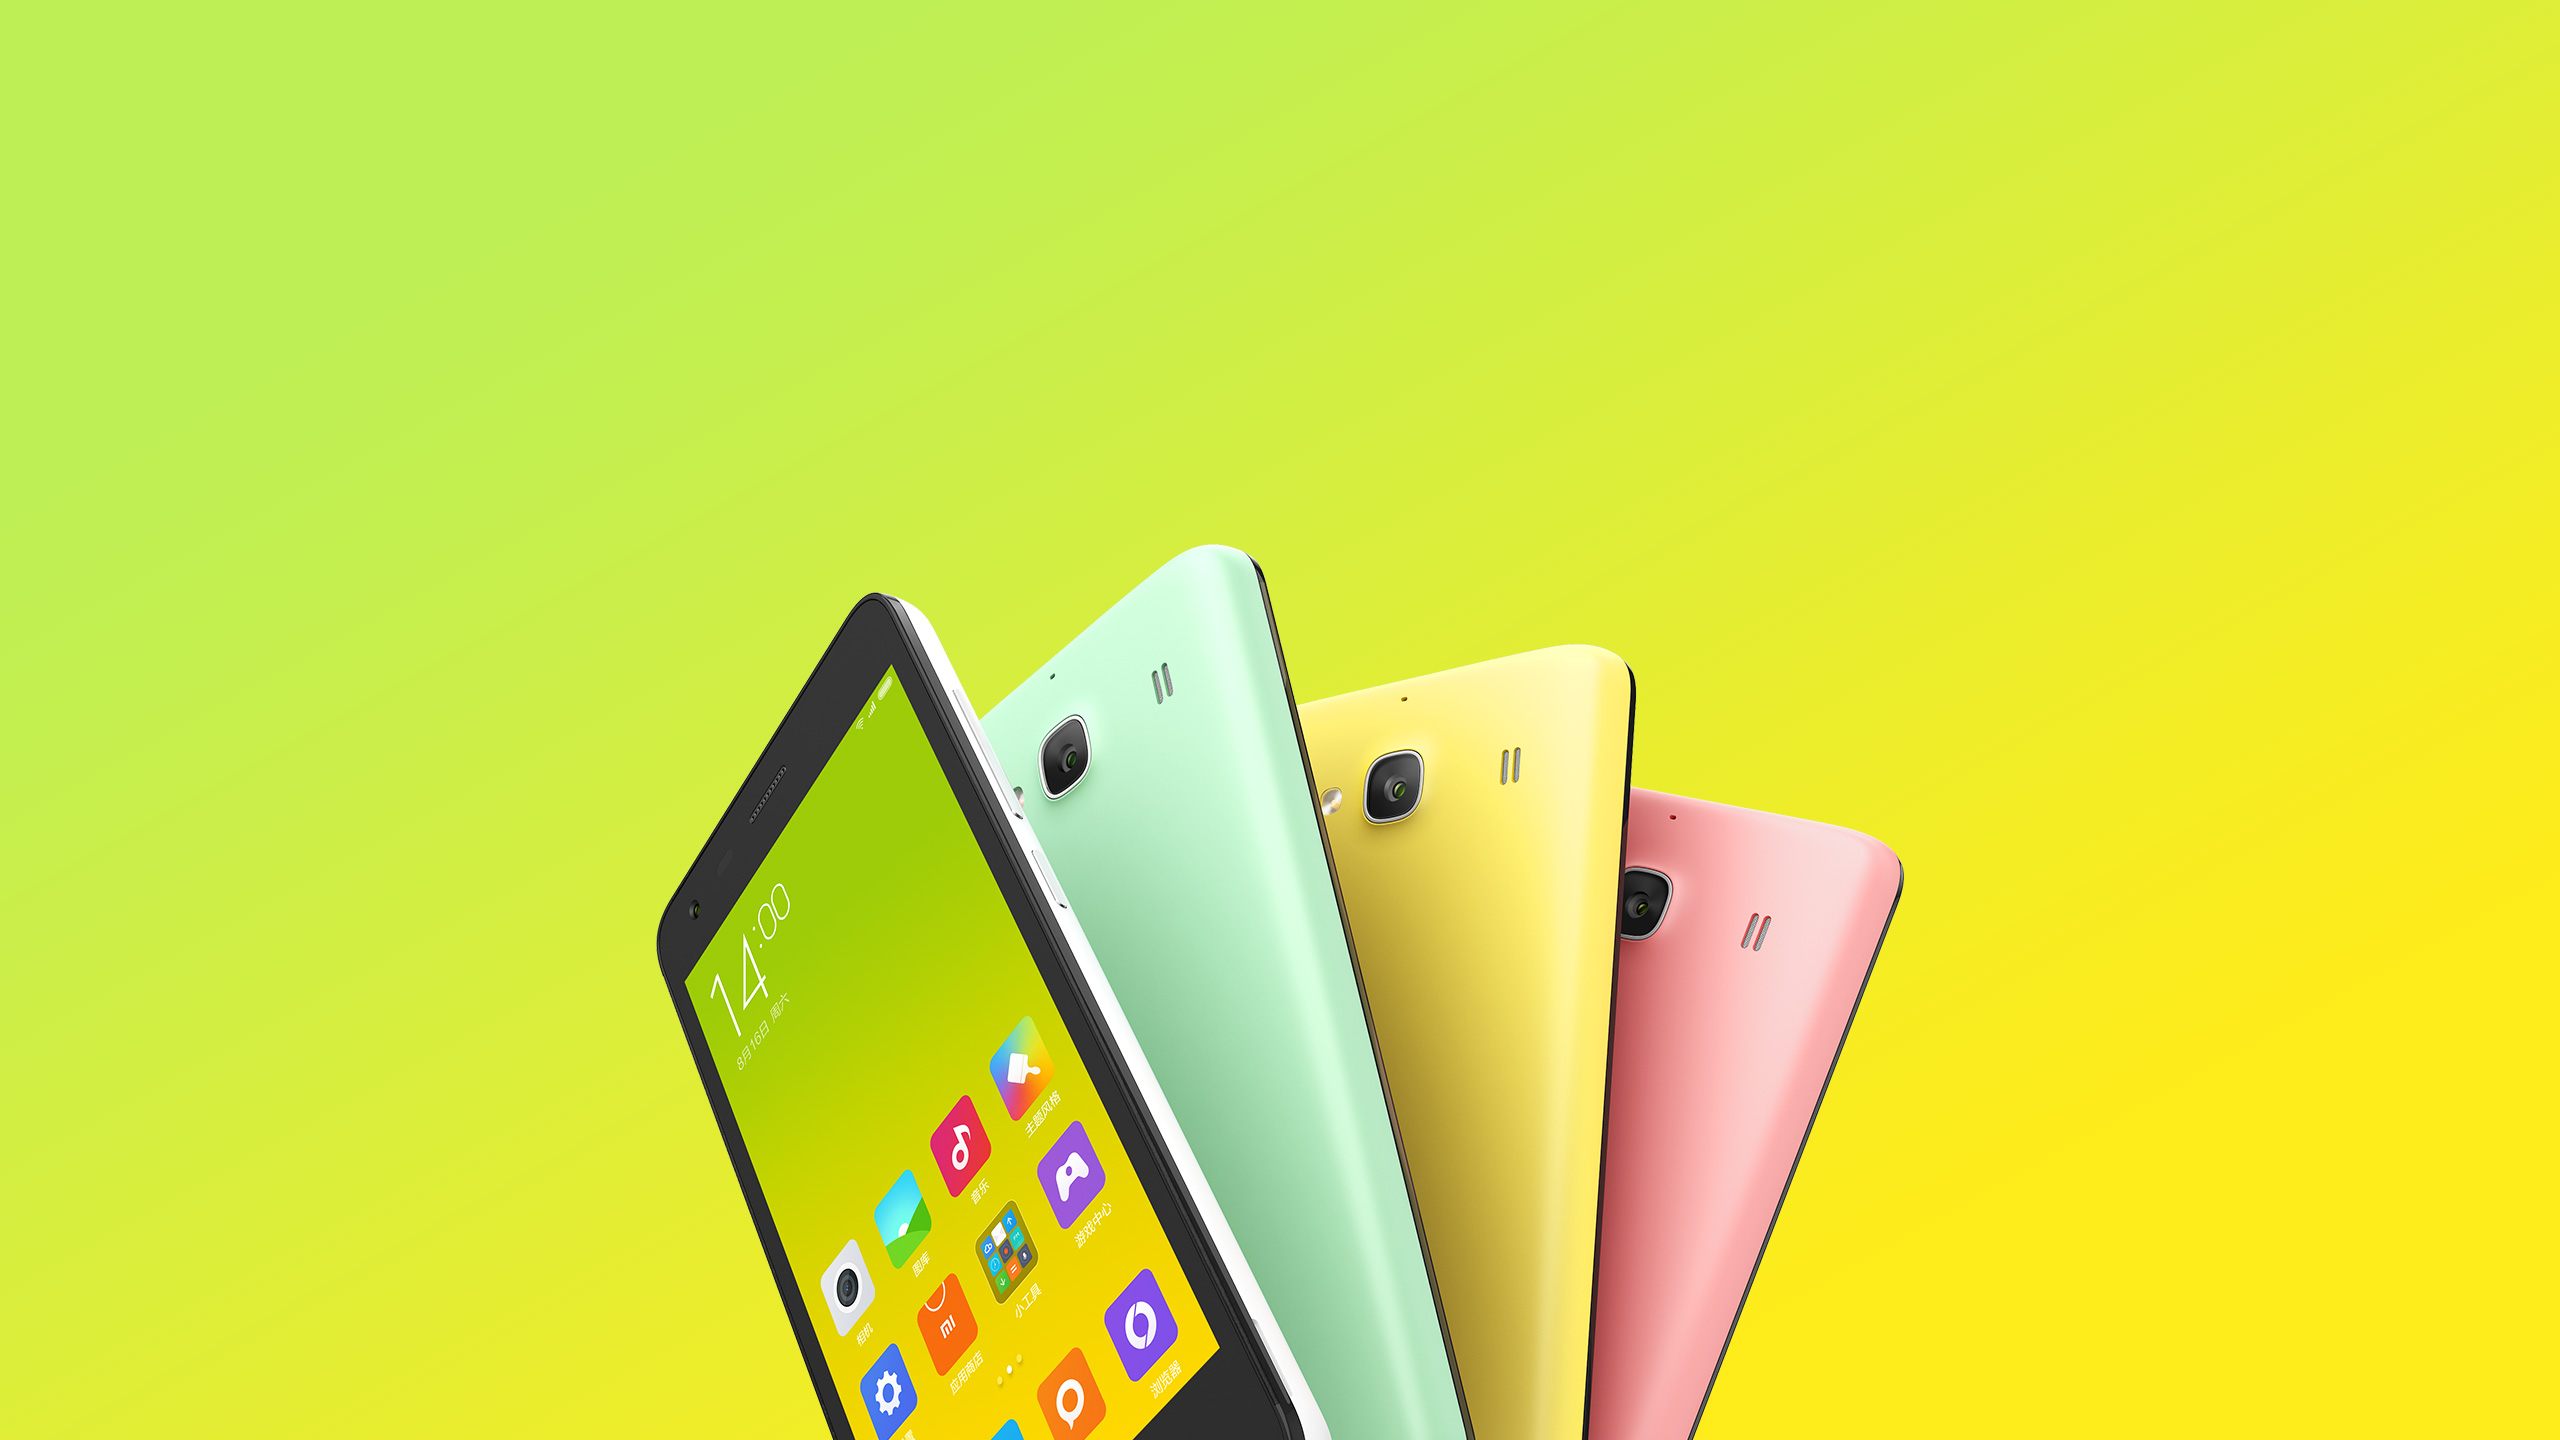 Xiaomi Redmi 2 With 4g Lte Support Launched In India For Rs 6999 110 Prime